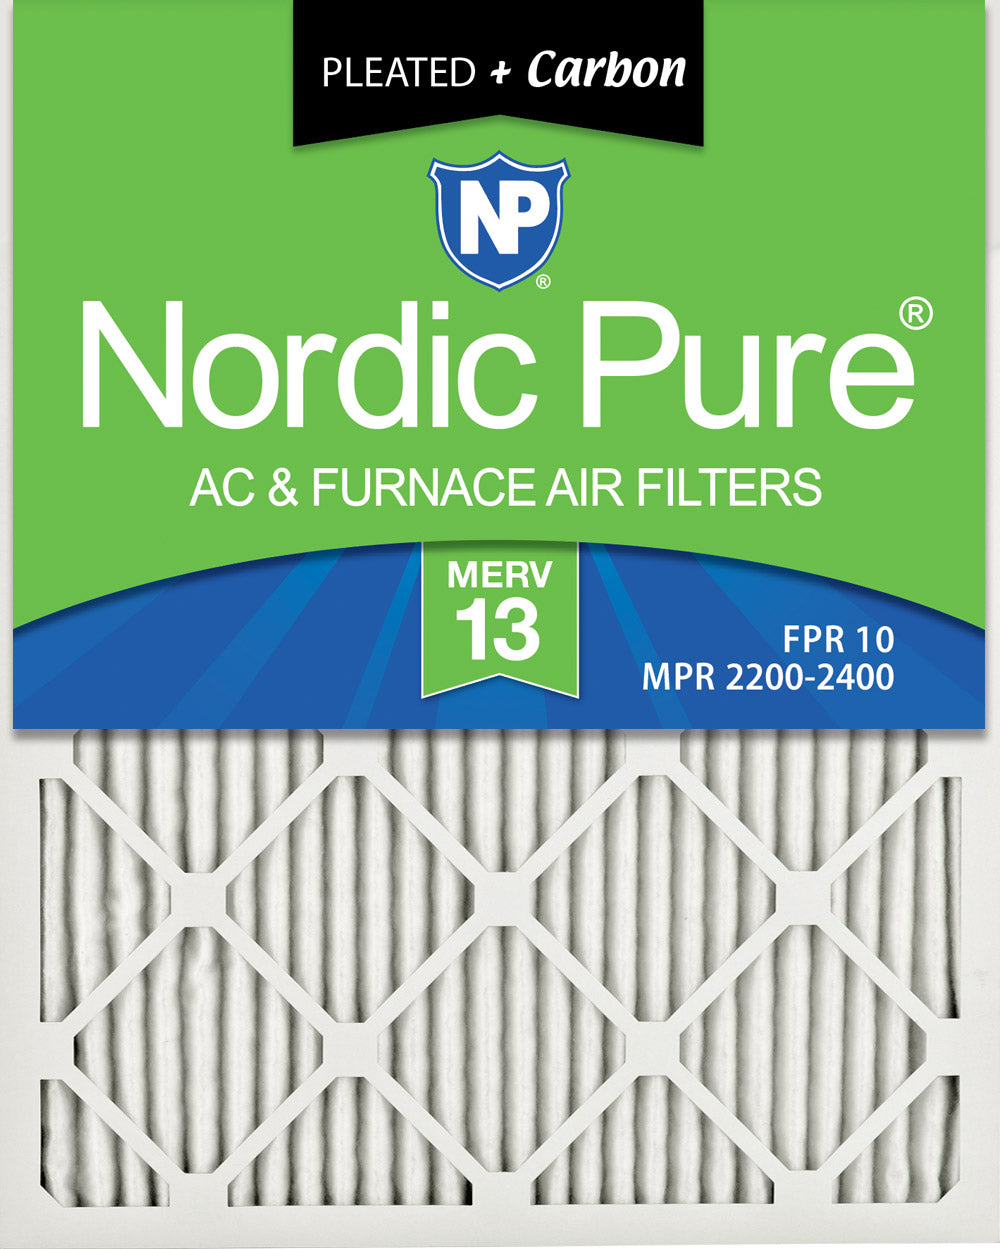 20x25x1 Pleated Air Filters MERV 13 Plus Carbon 3 Pack